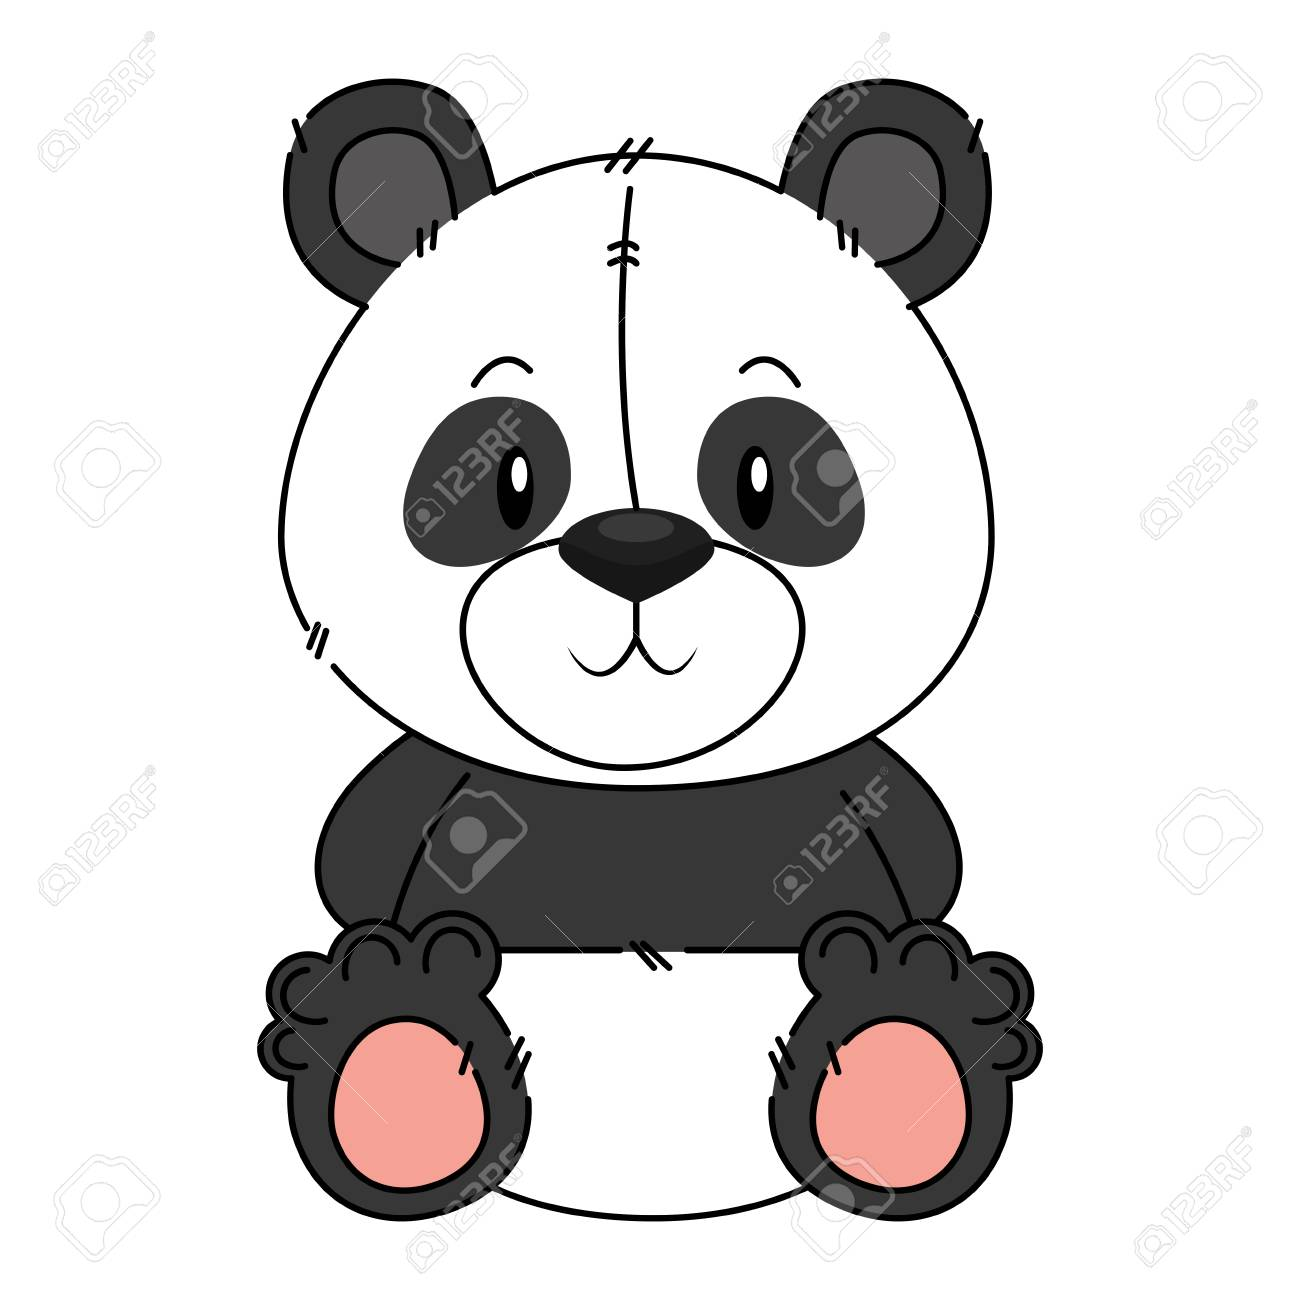 Anxiety Stuffed Animal, Cute And Adorable Panda Bear Character Vector Illustration Design Royalty Free Cliparts Vectors And Stock Illustration Image 112326868